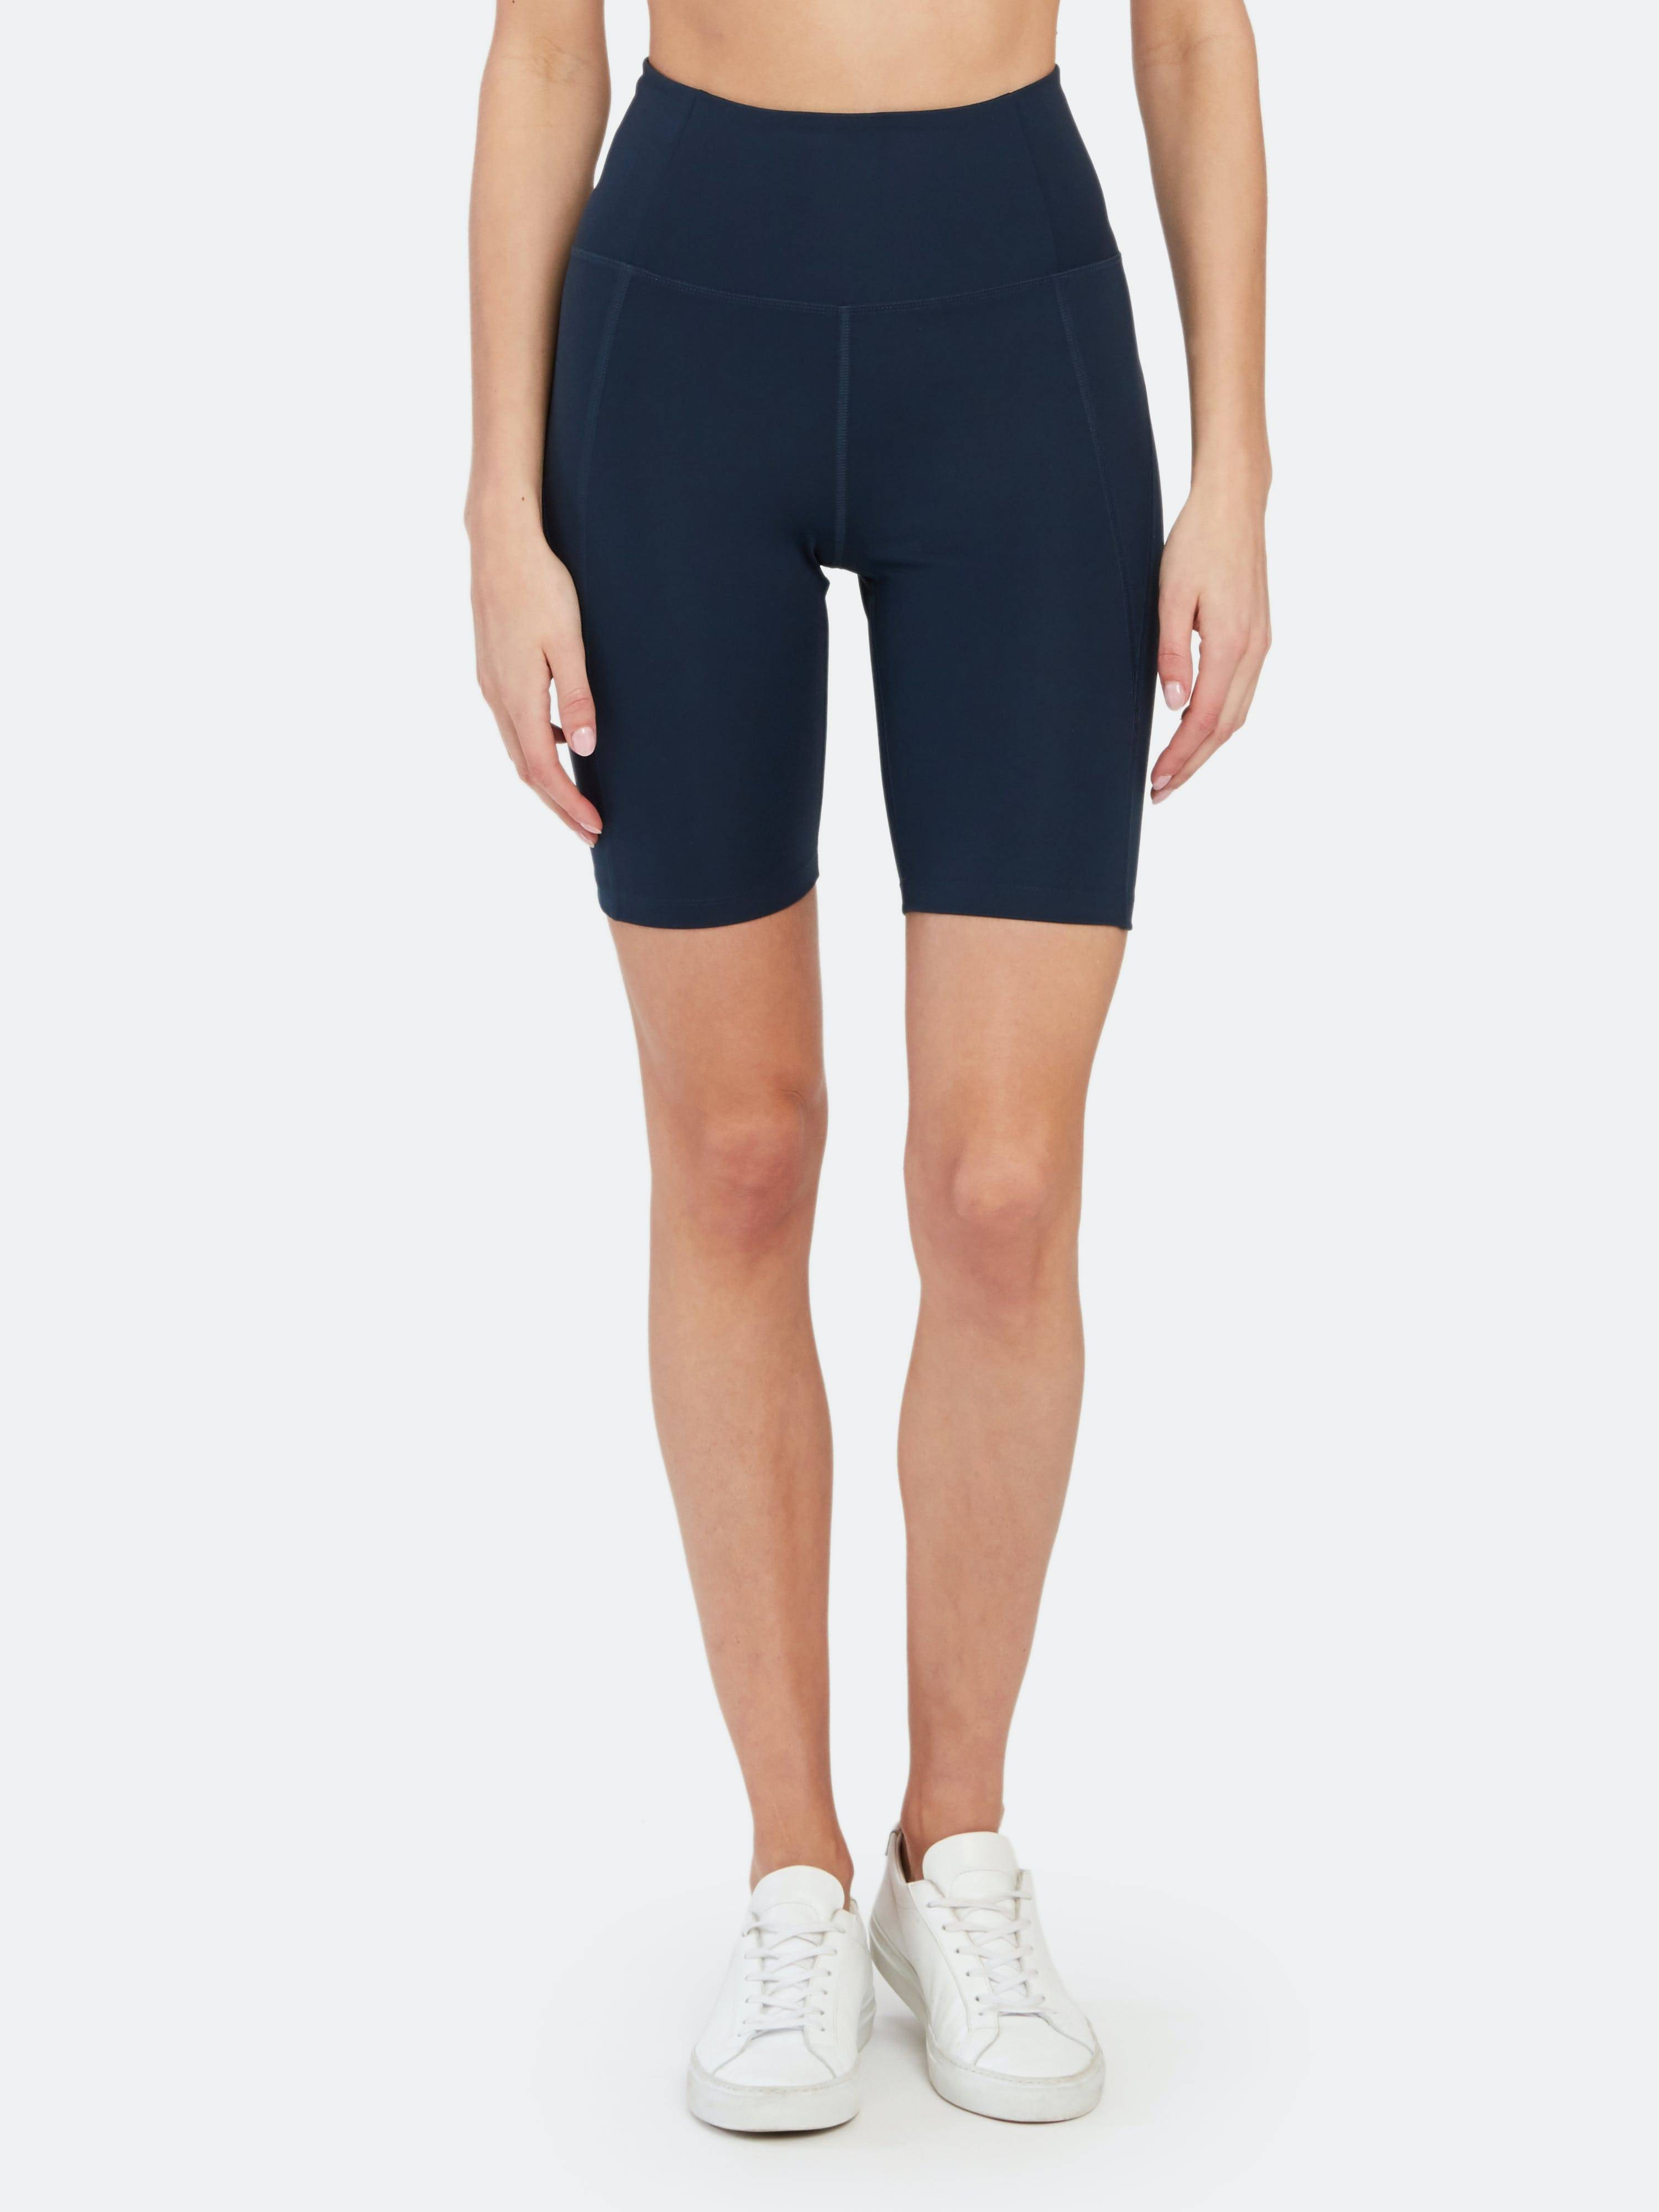 Girlfriend Collective High-Rise Bike Short - XL - Also in: M, XS, L, S  - Blue